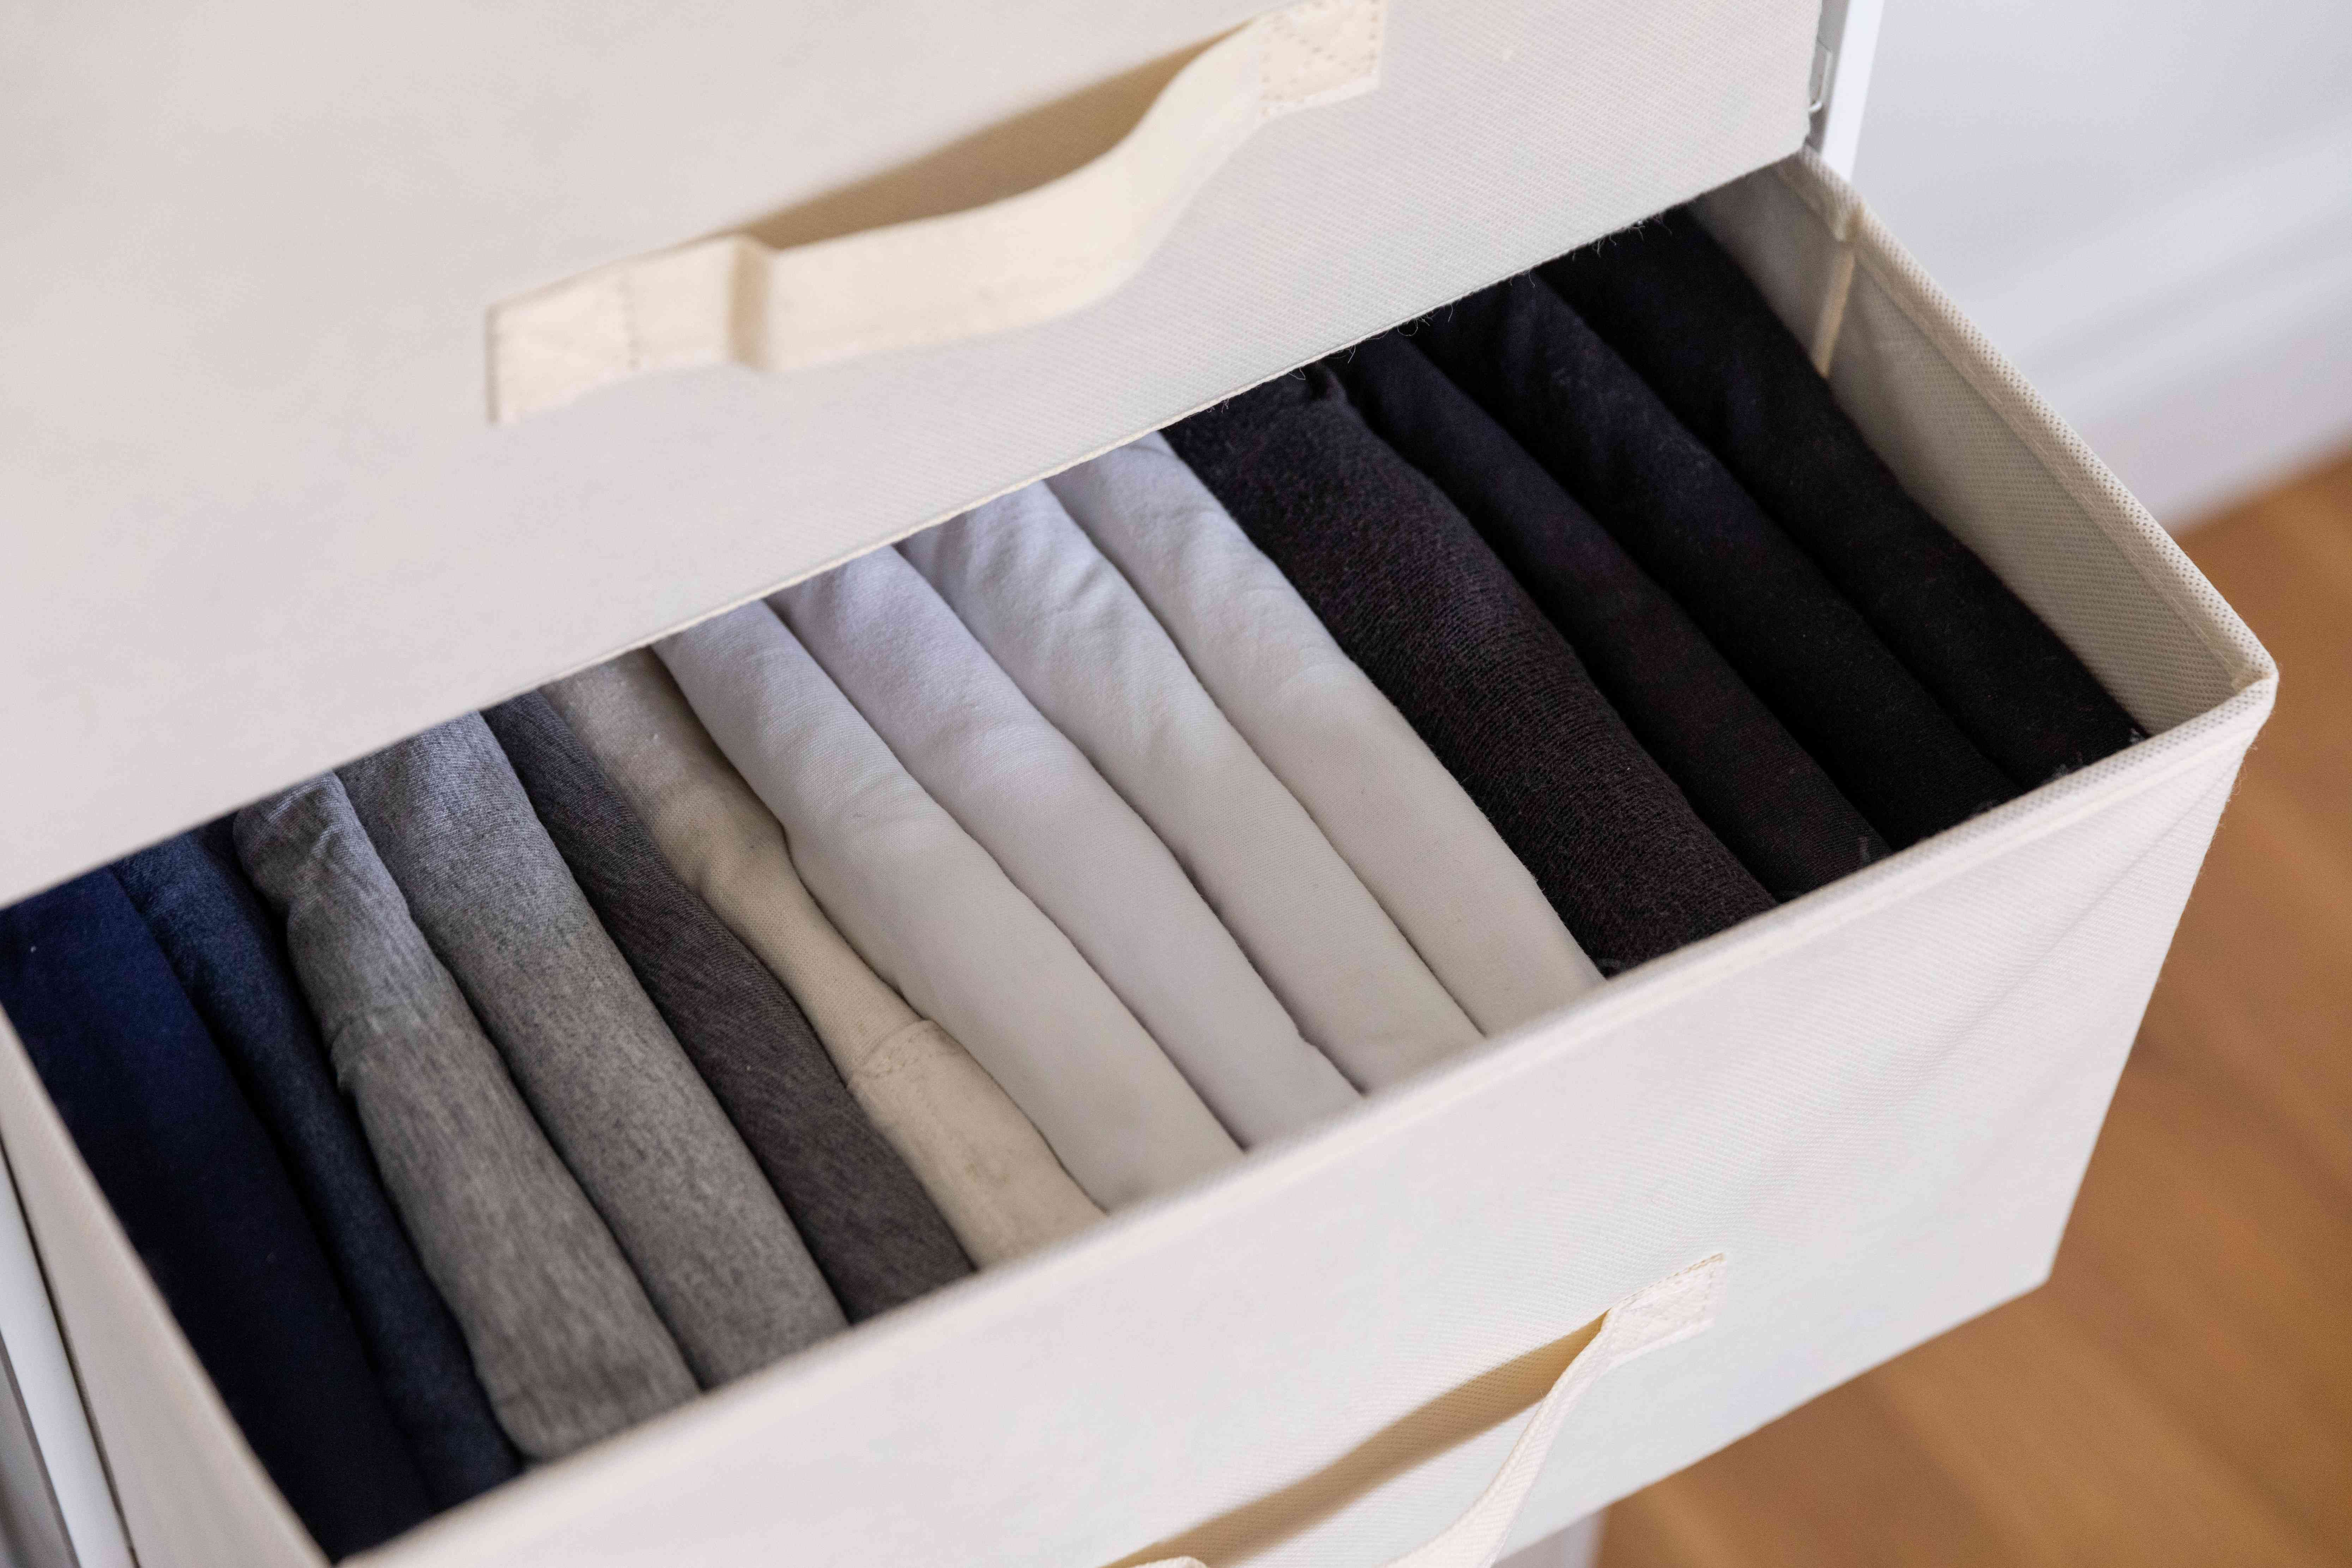 tshirts neatly folded in a drawer